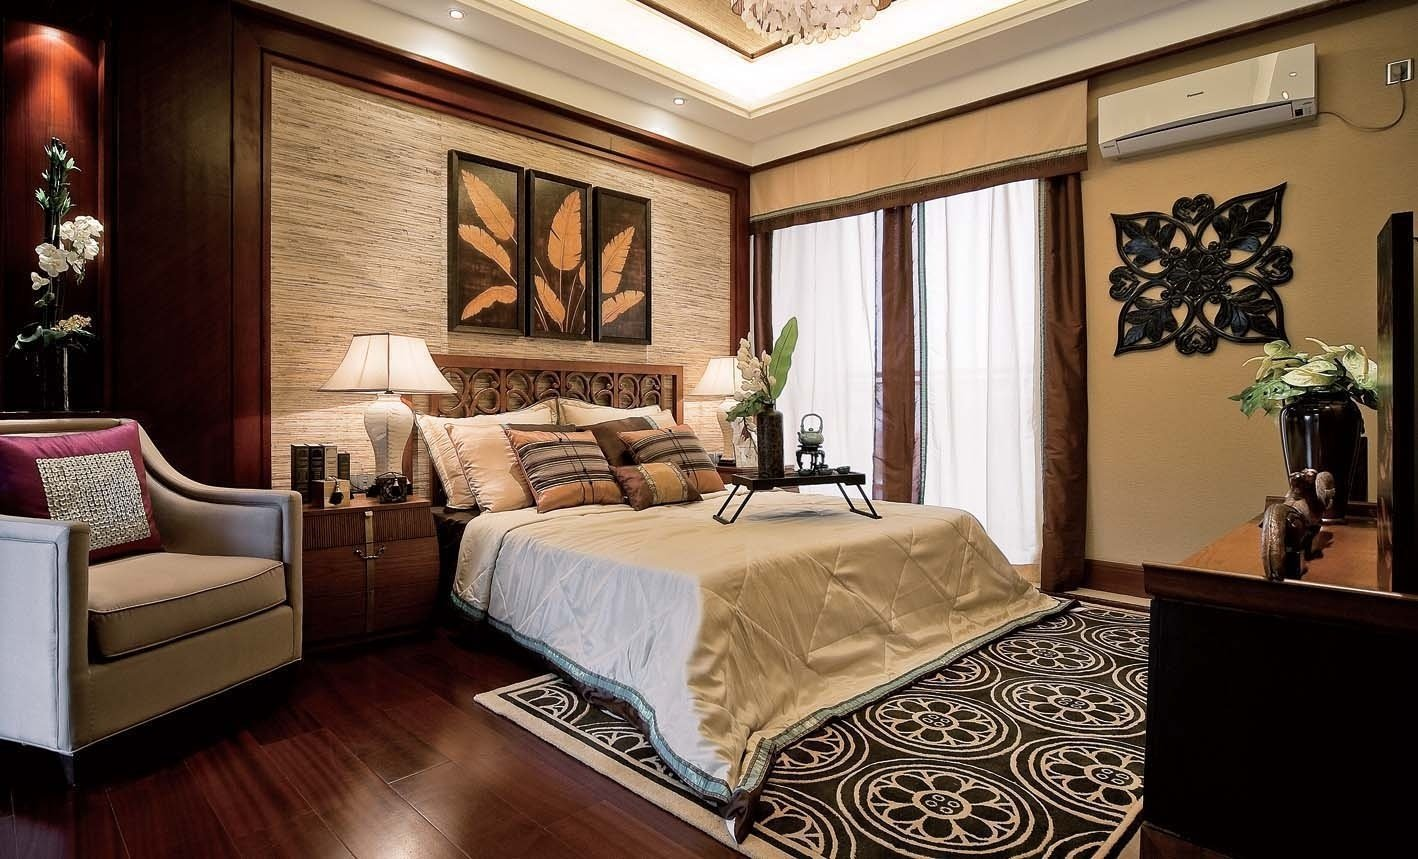 How To Make Your Bedroom Feel More Romantic